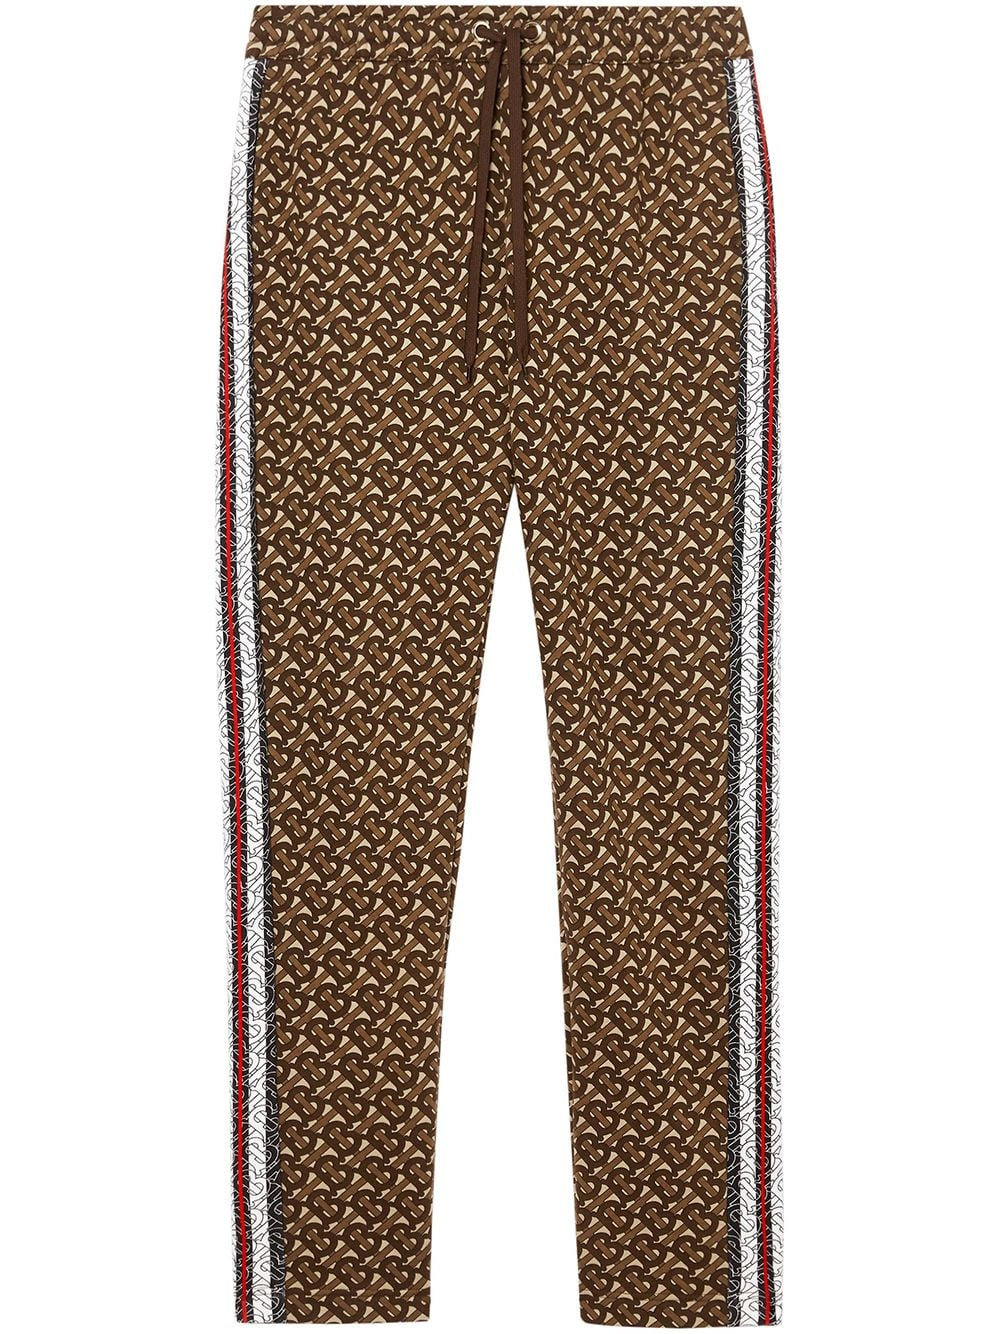 Monogram Stripe Print Cotton Trackpants by Burberry, available on farfetch.com for $760 Gigi Hadid Pants Exact Product